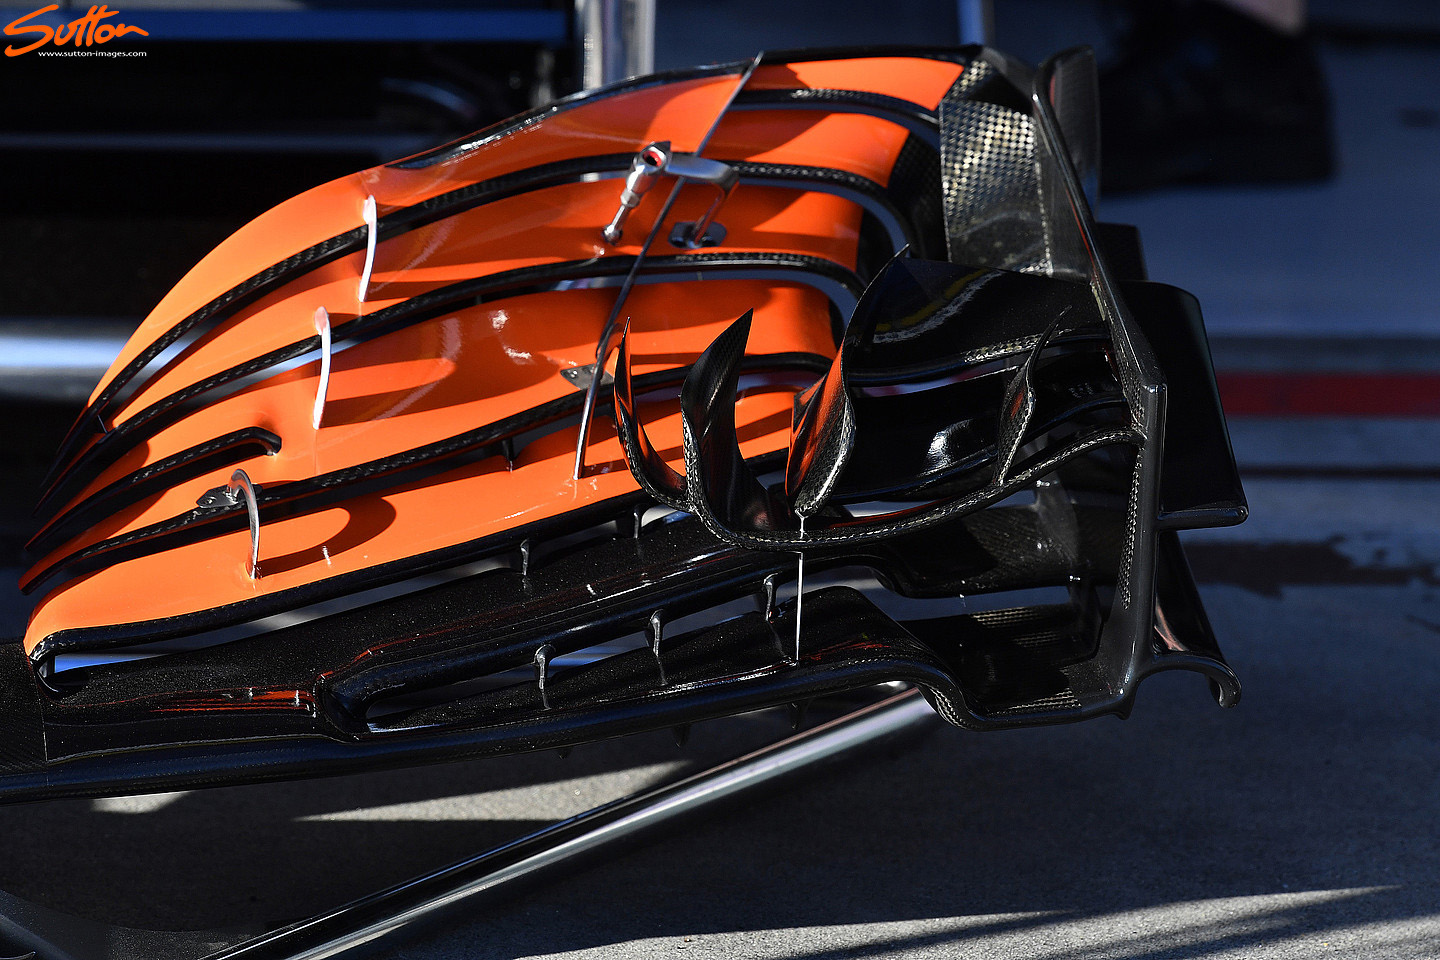 mcl32-fw(2)